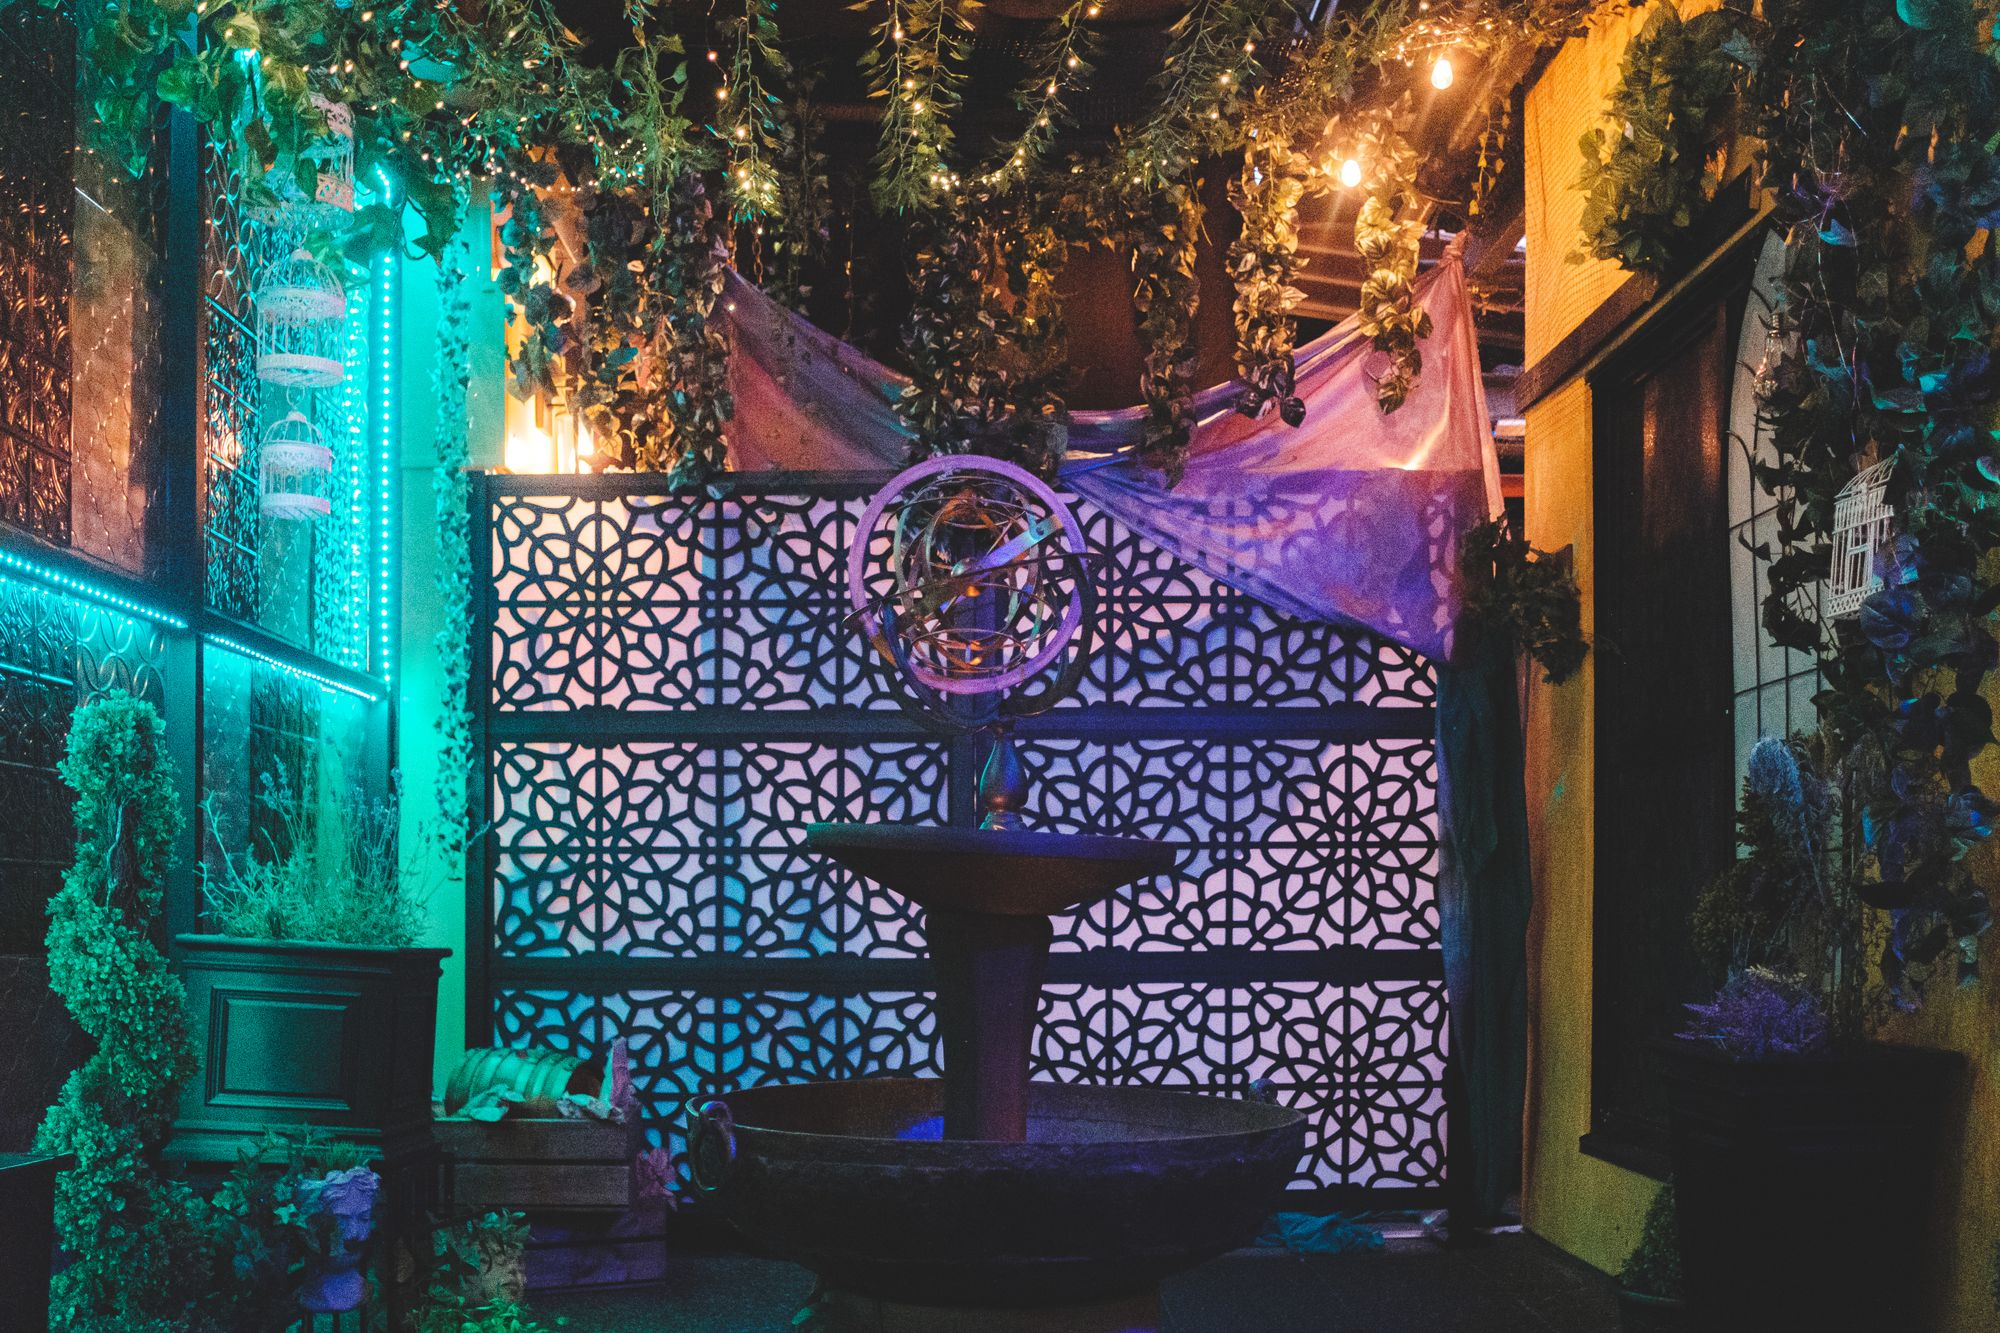 The Wizard's Den (Vancouver) - An Immersive Experience for Magical Humans [OVERVIEW]